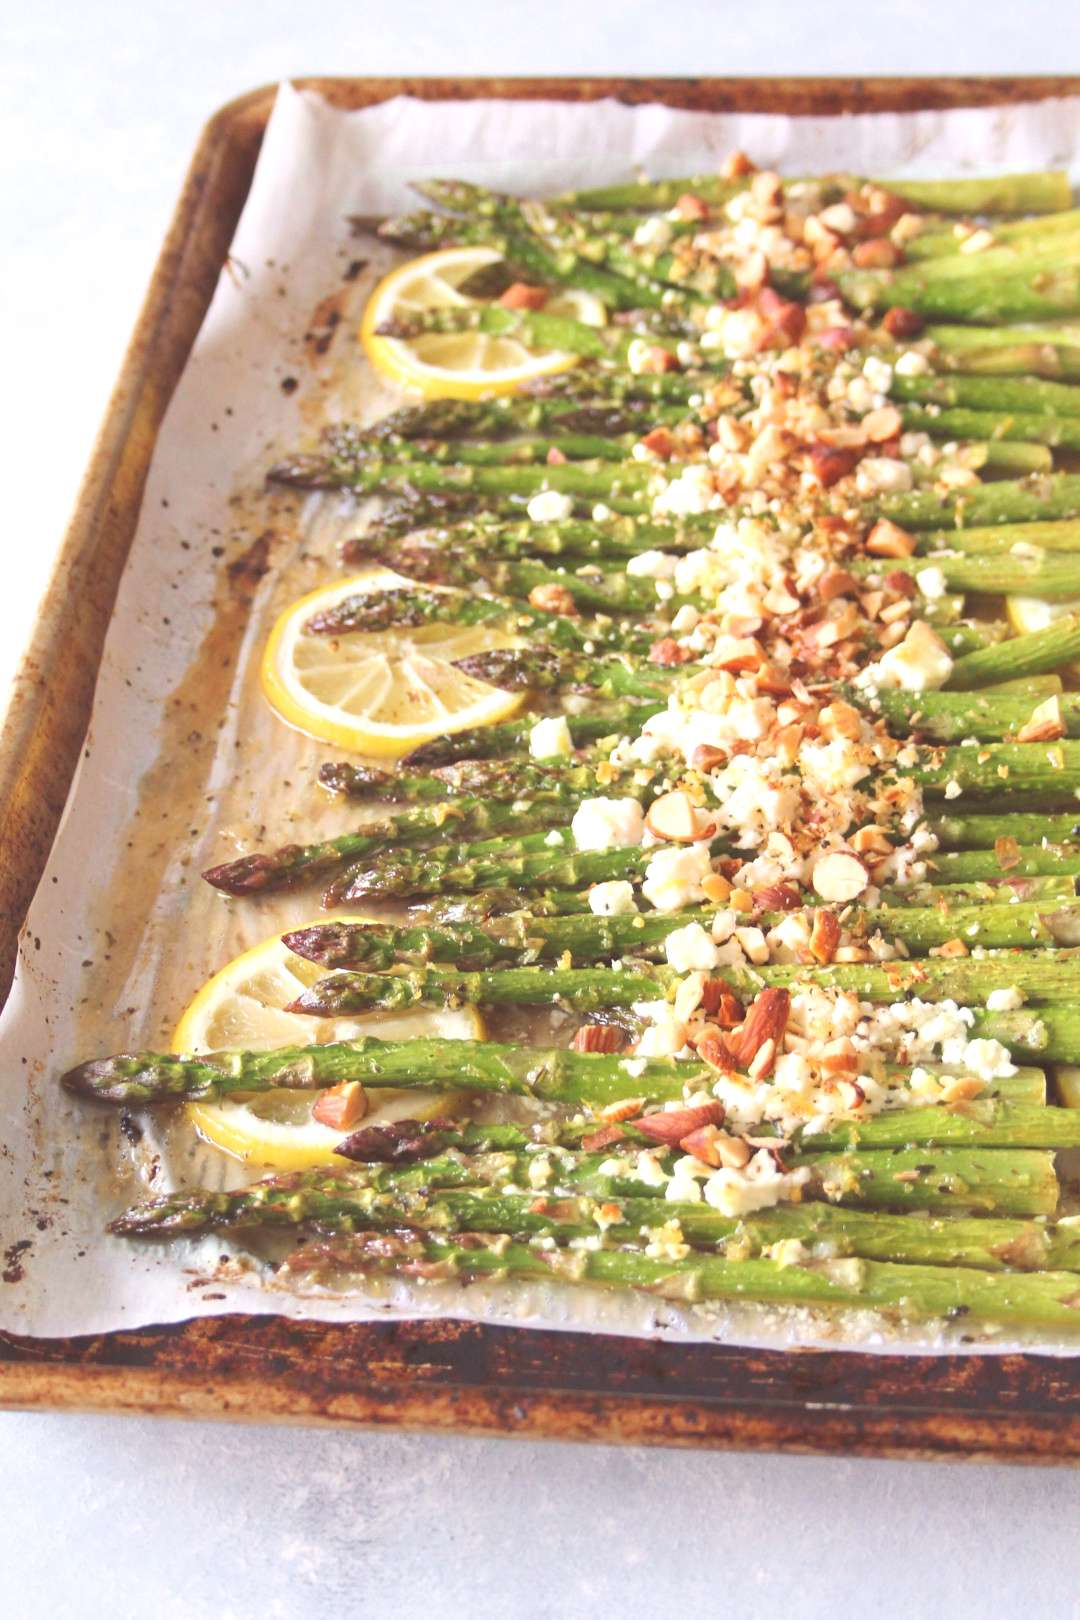 Honey-Lemon Roasted Asparagus with Feta -  Honey-Lemon Roasted Asparagus with Feta (No feta)  -